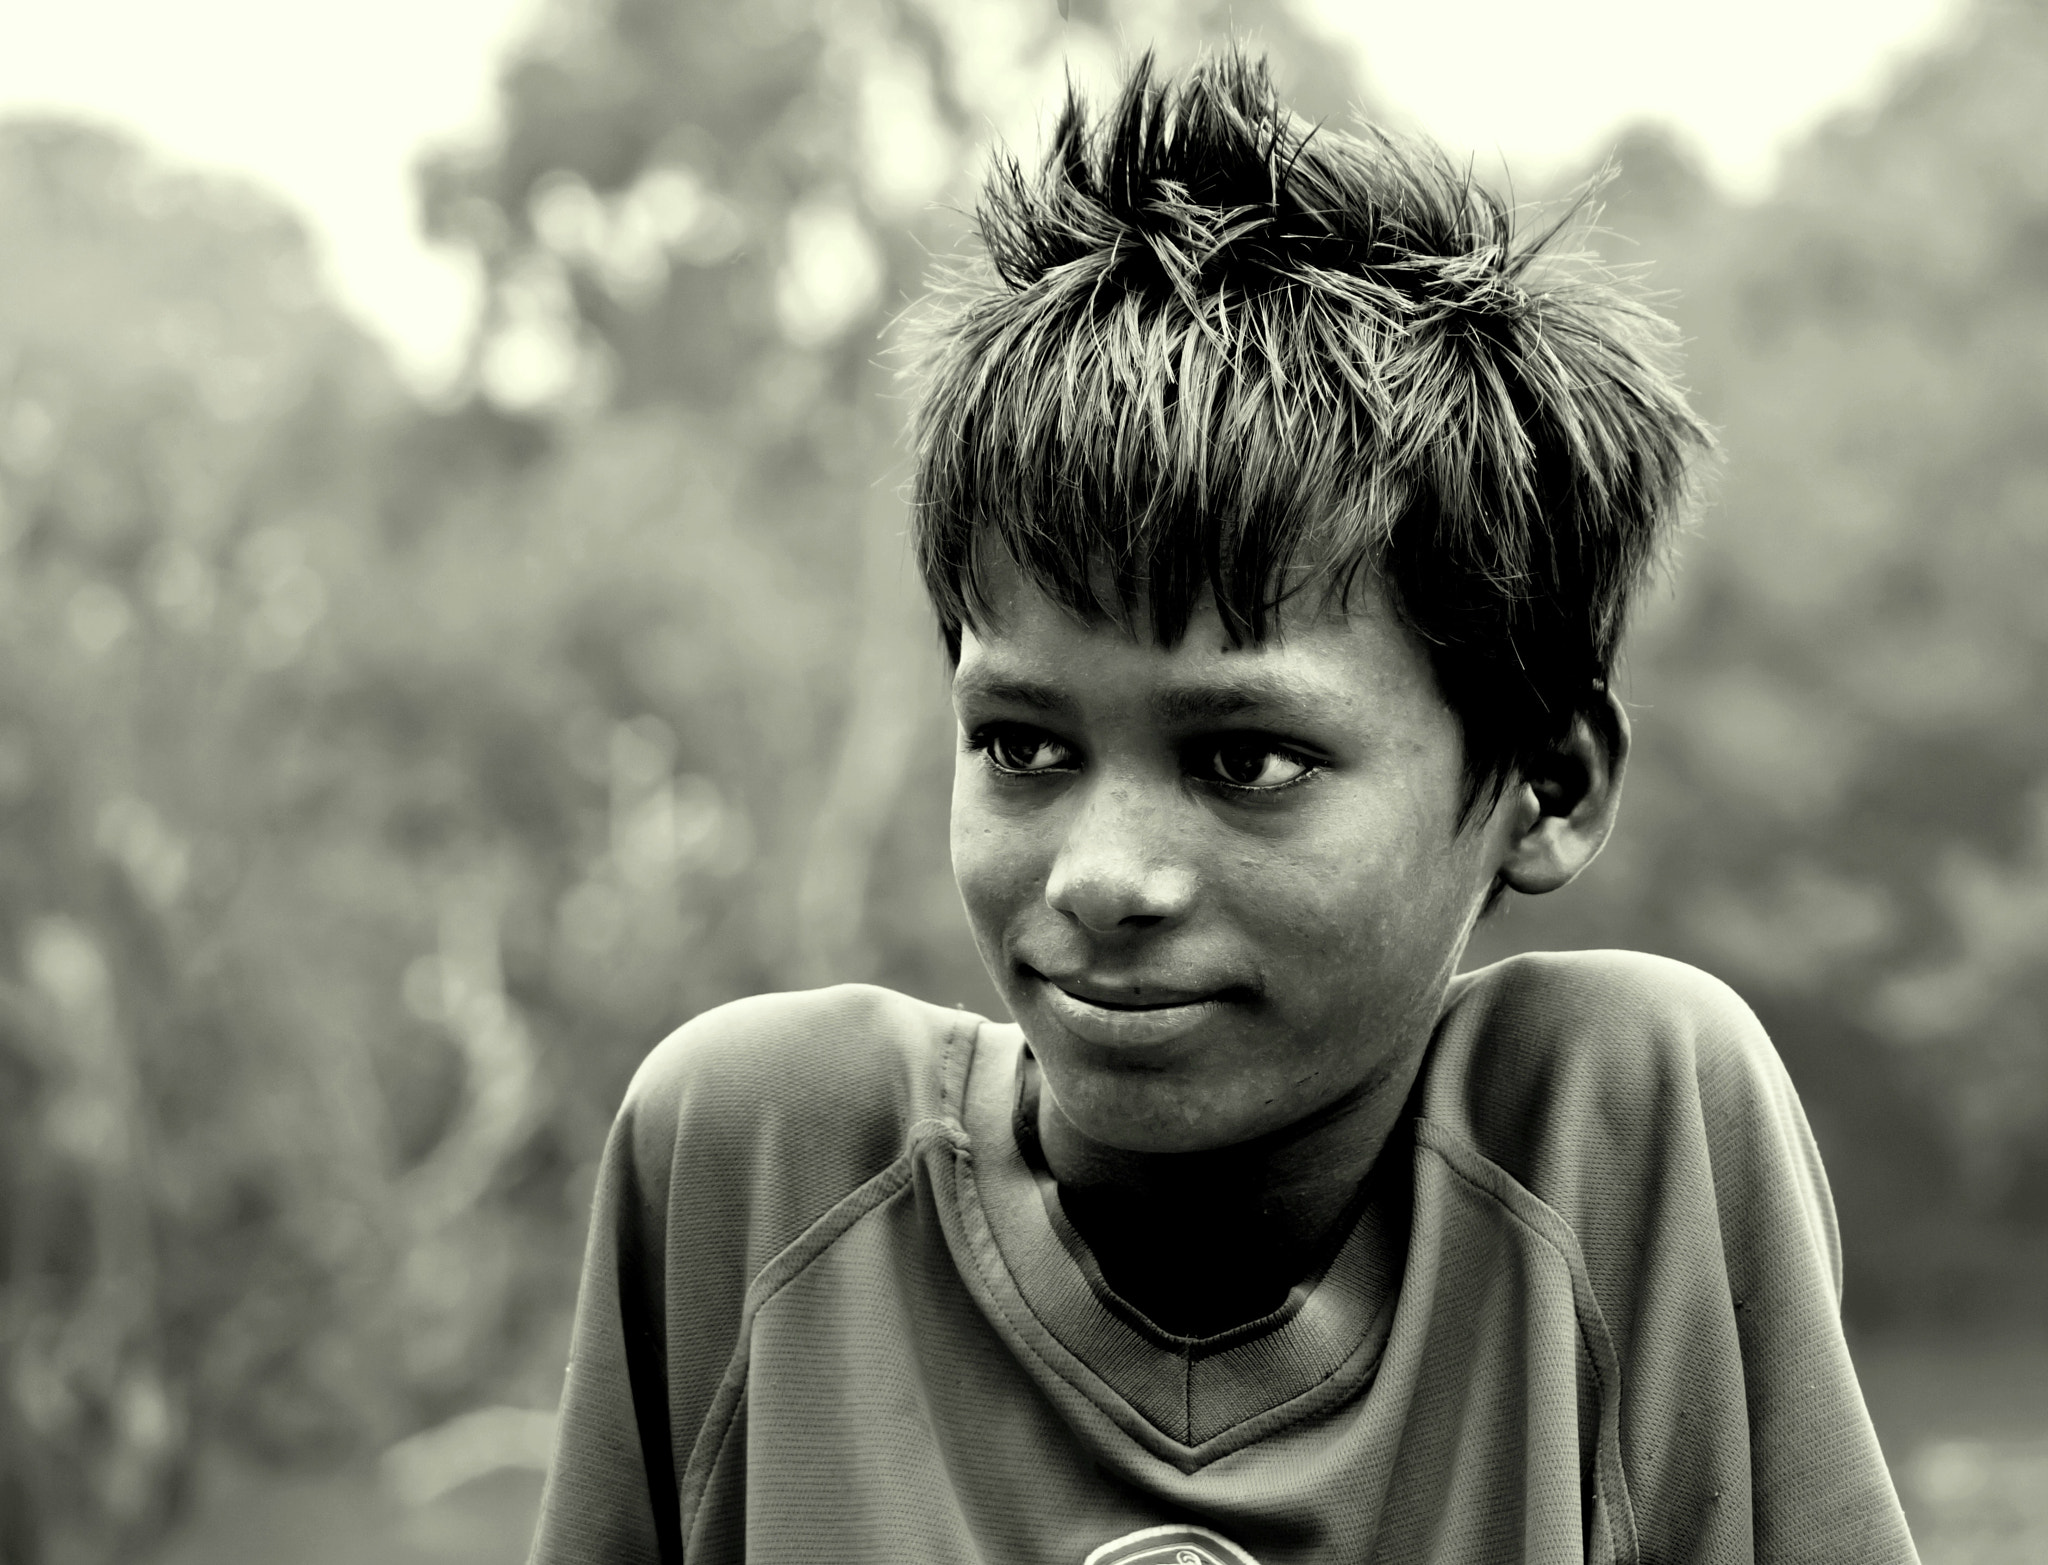 Photograph My model agrees to smile.. by Samrat  Mukhopadhyay on 500px